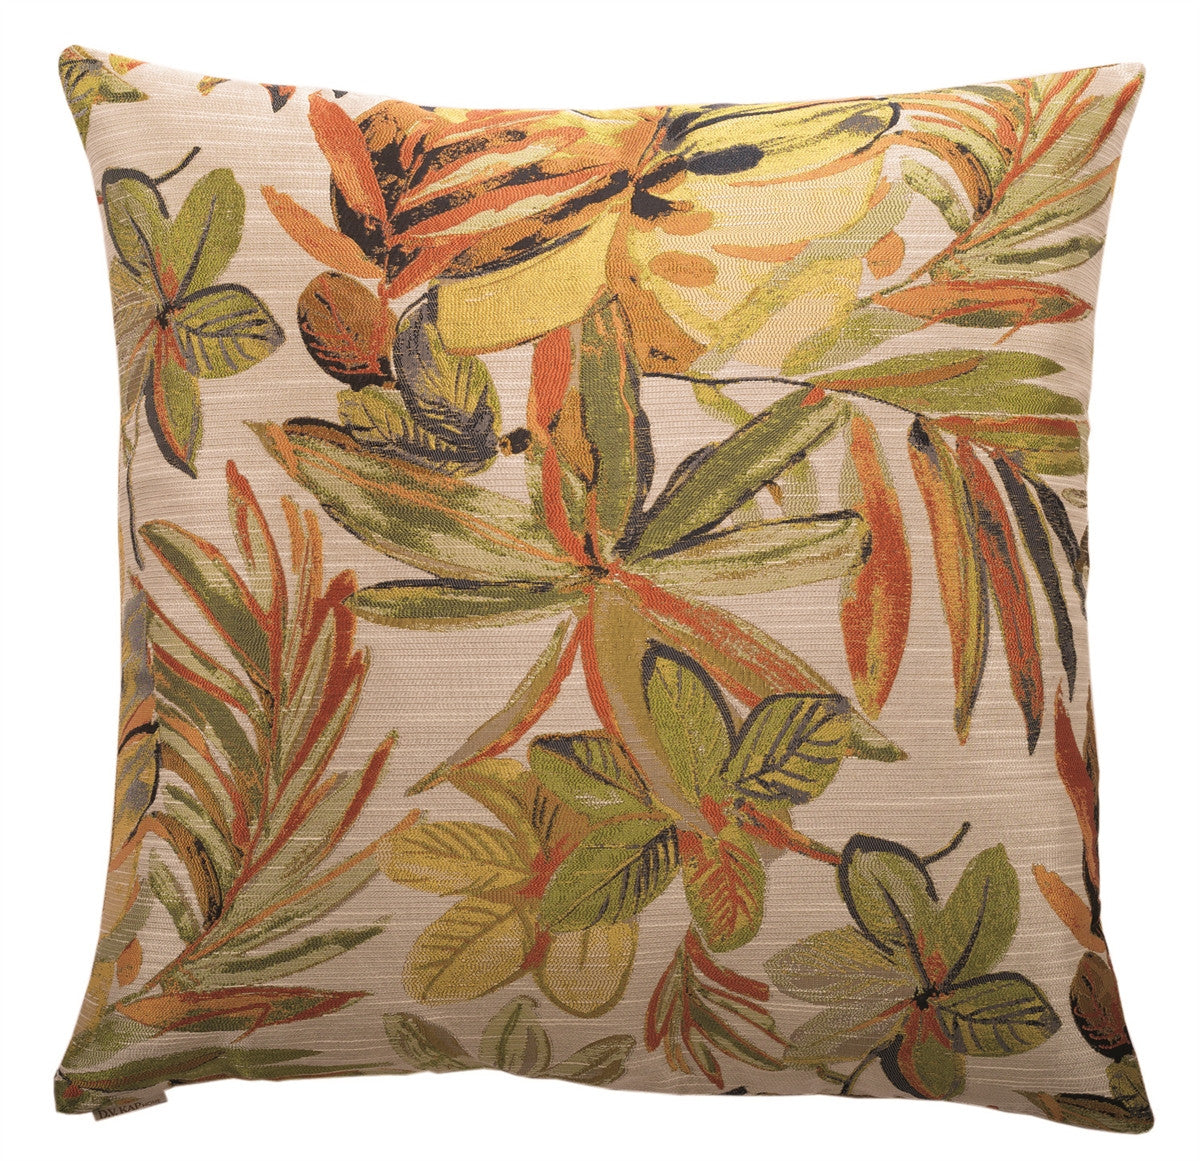 DV Kap Home - San Carlos Toss Pillow